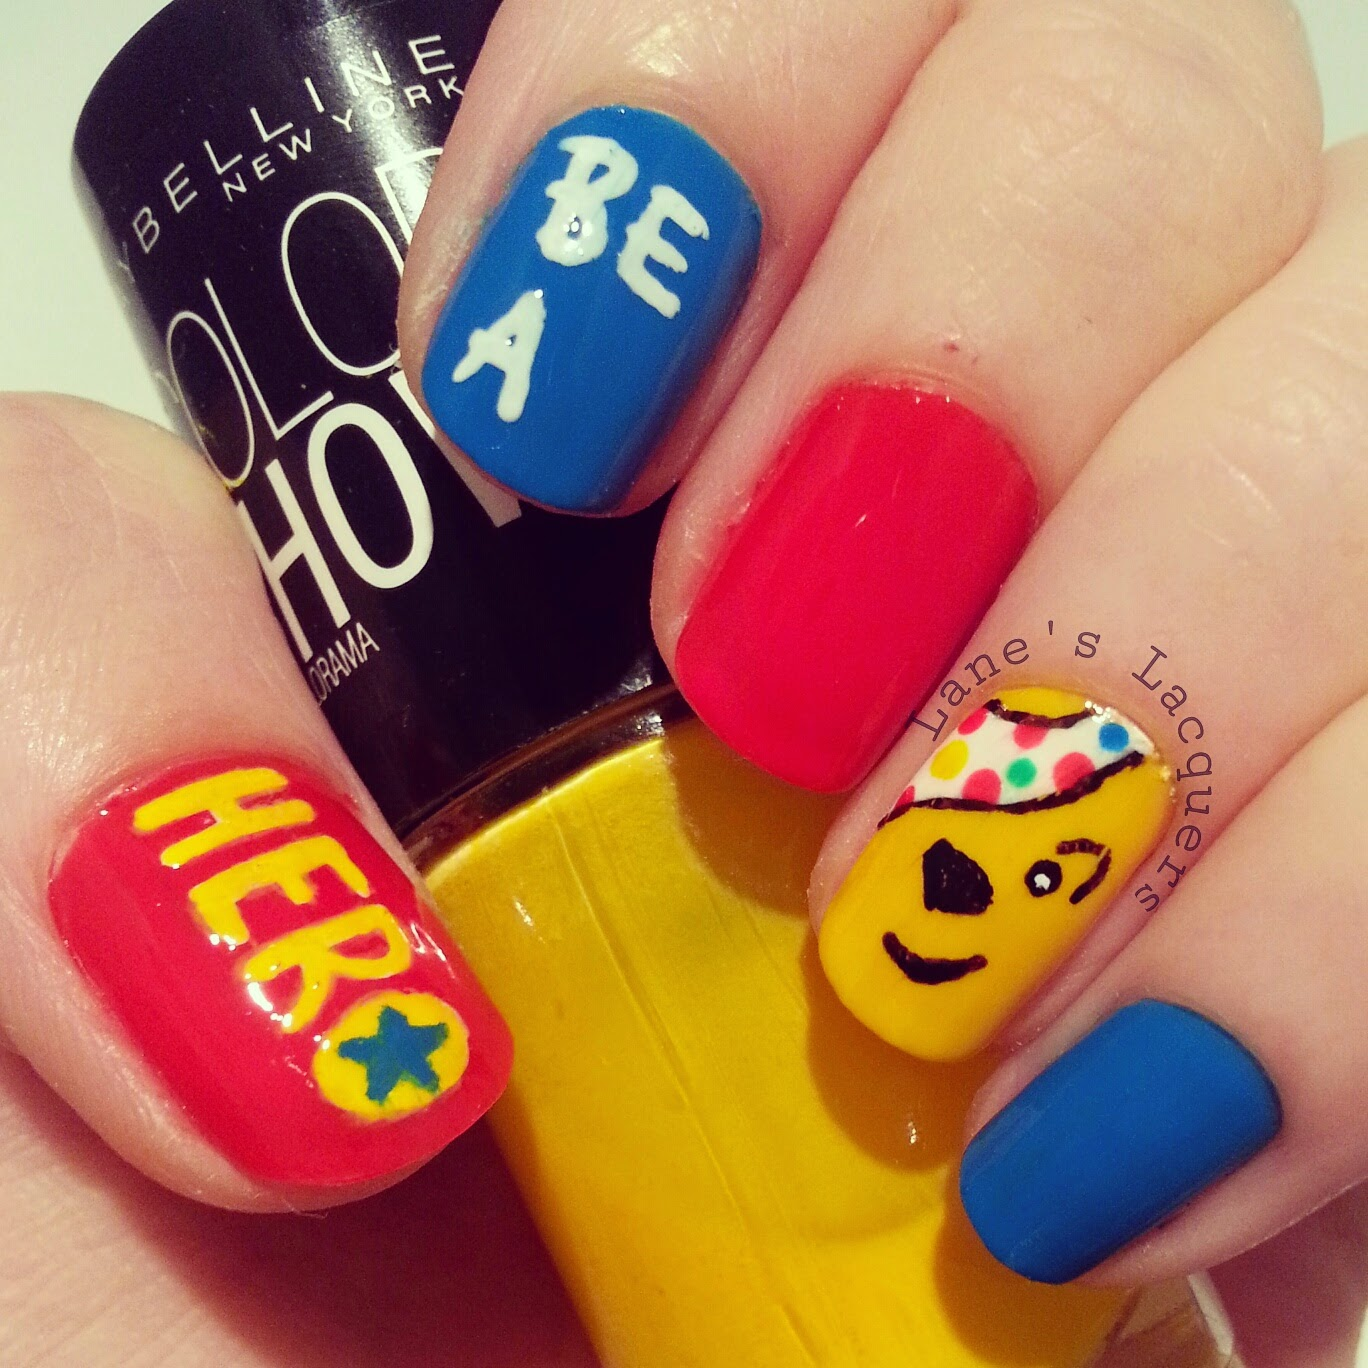 bbc-children-in-need-2014-be-a-hero-pudsey-nail-art (2)